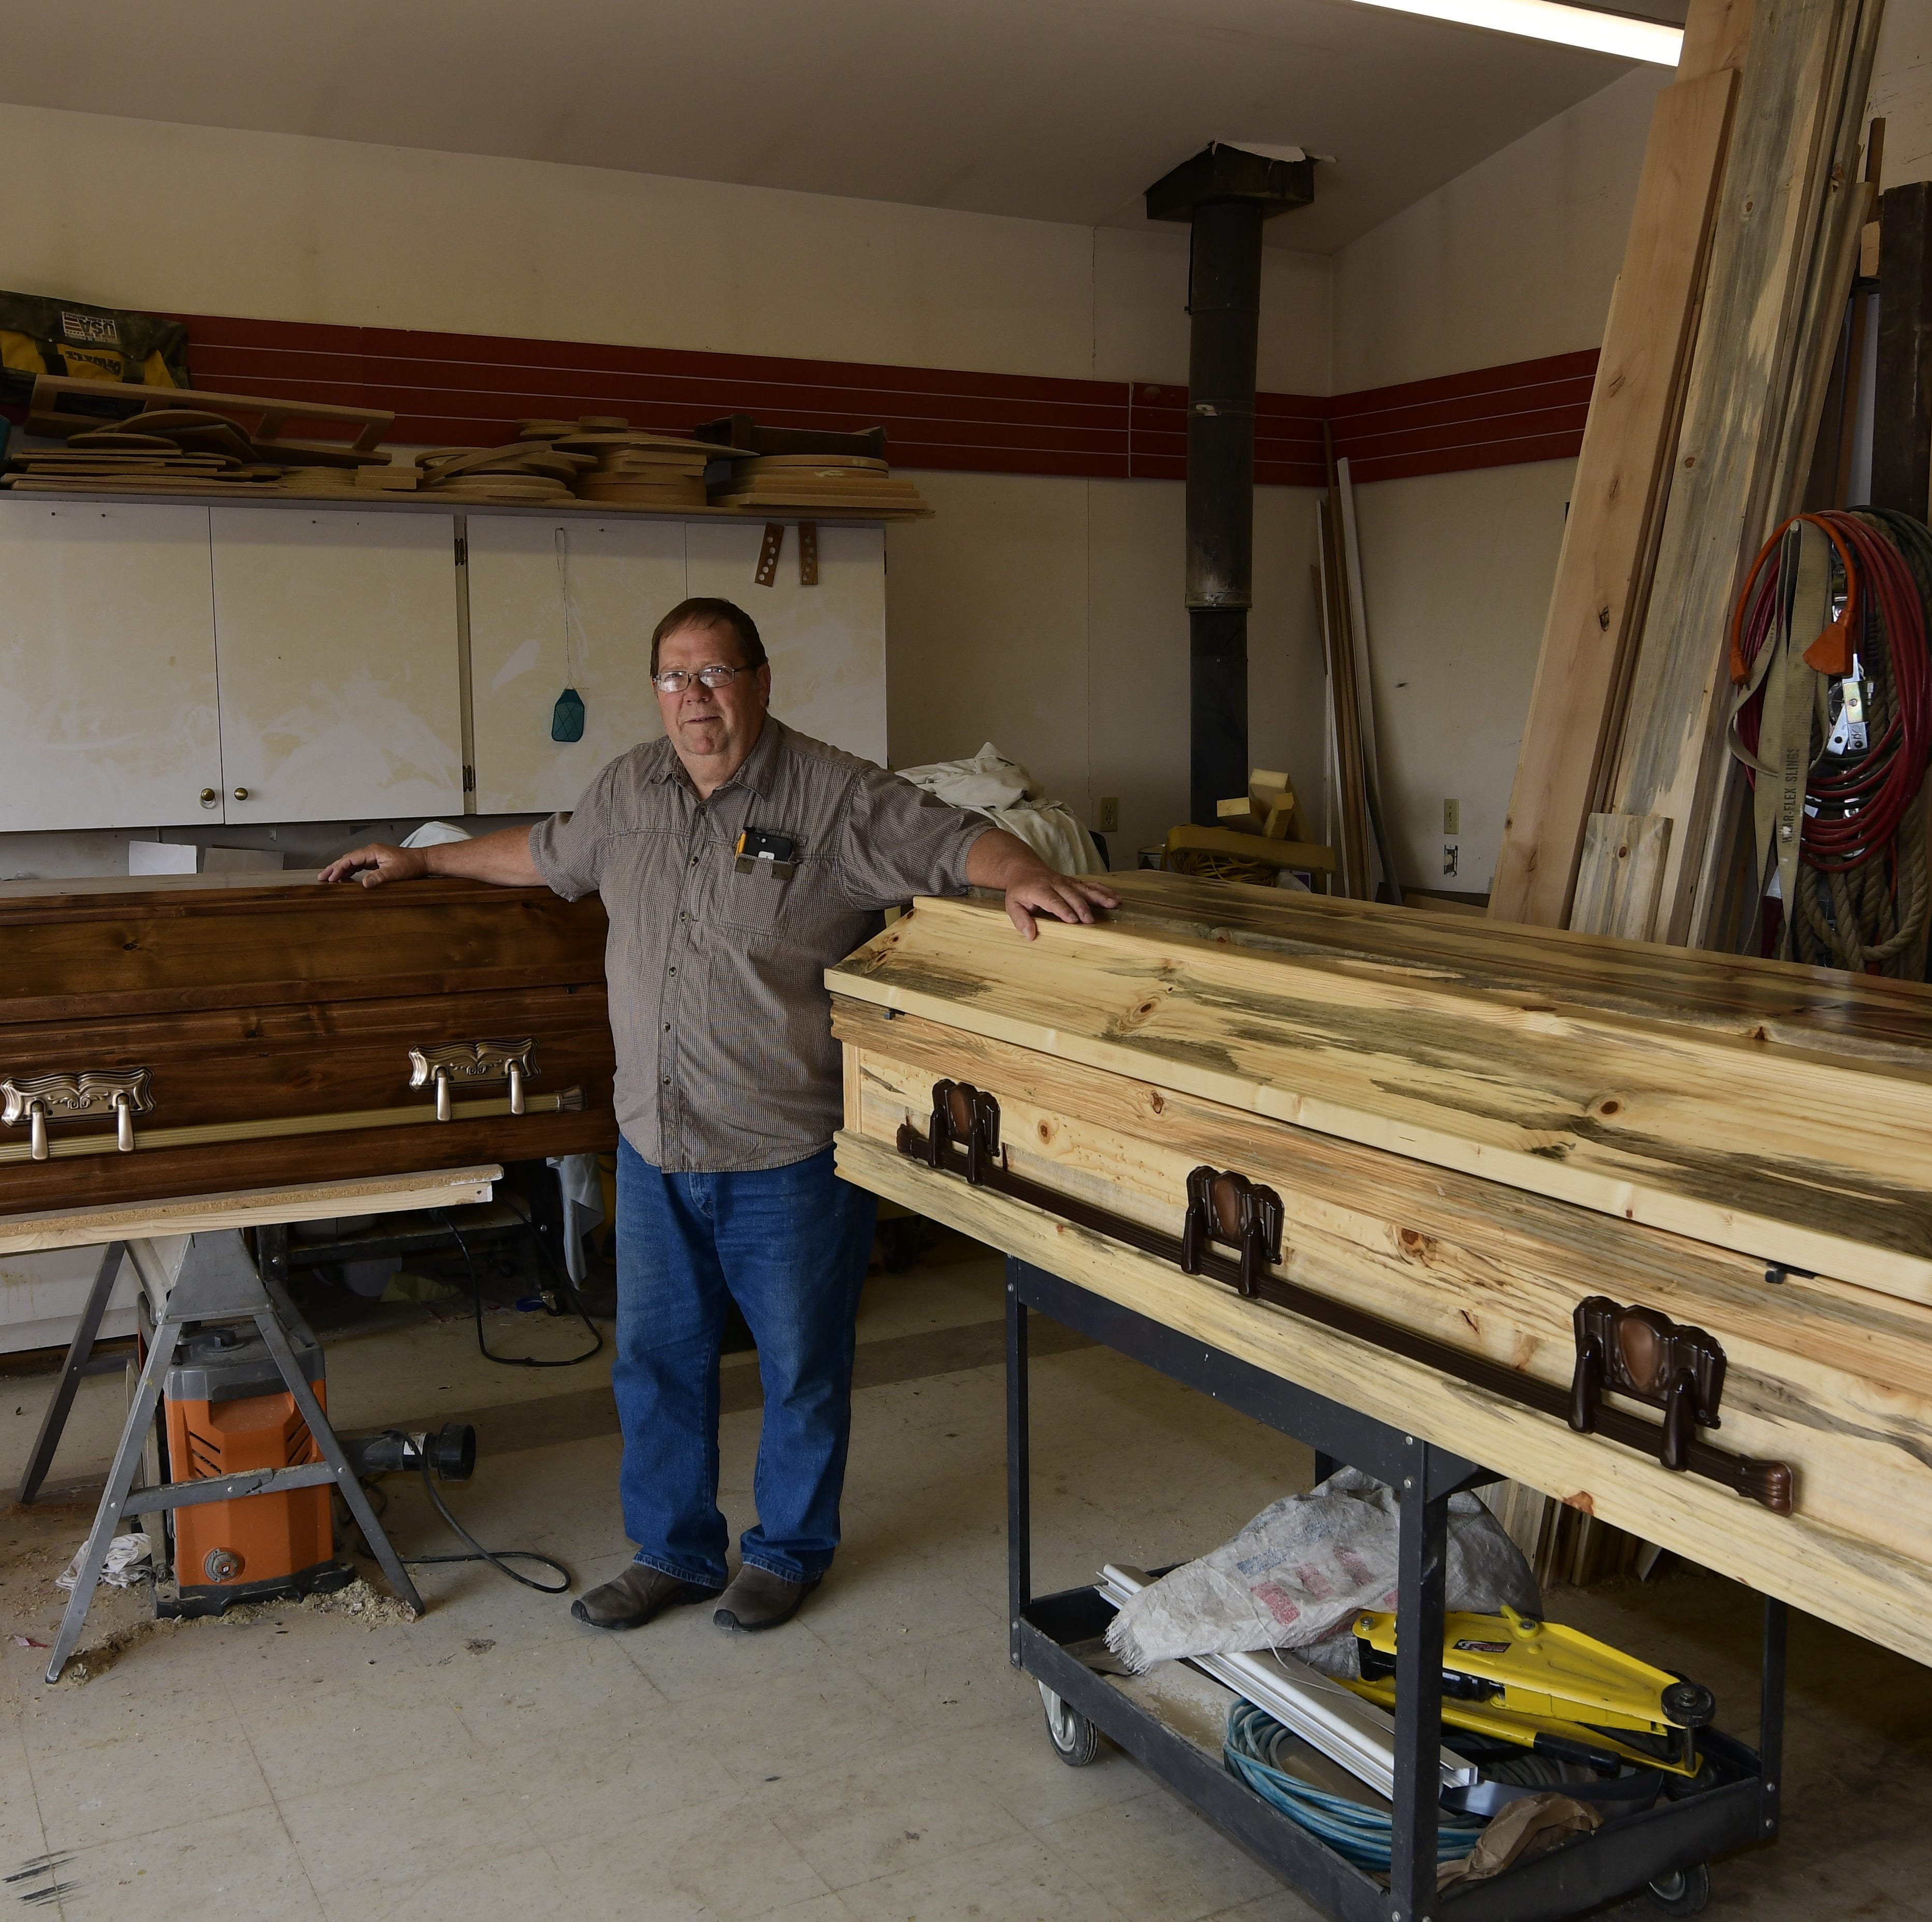 Montana casket maker's start in the business was a labor of love